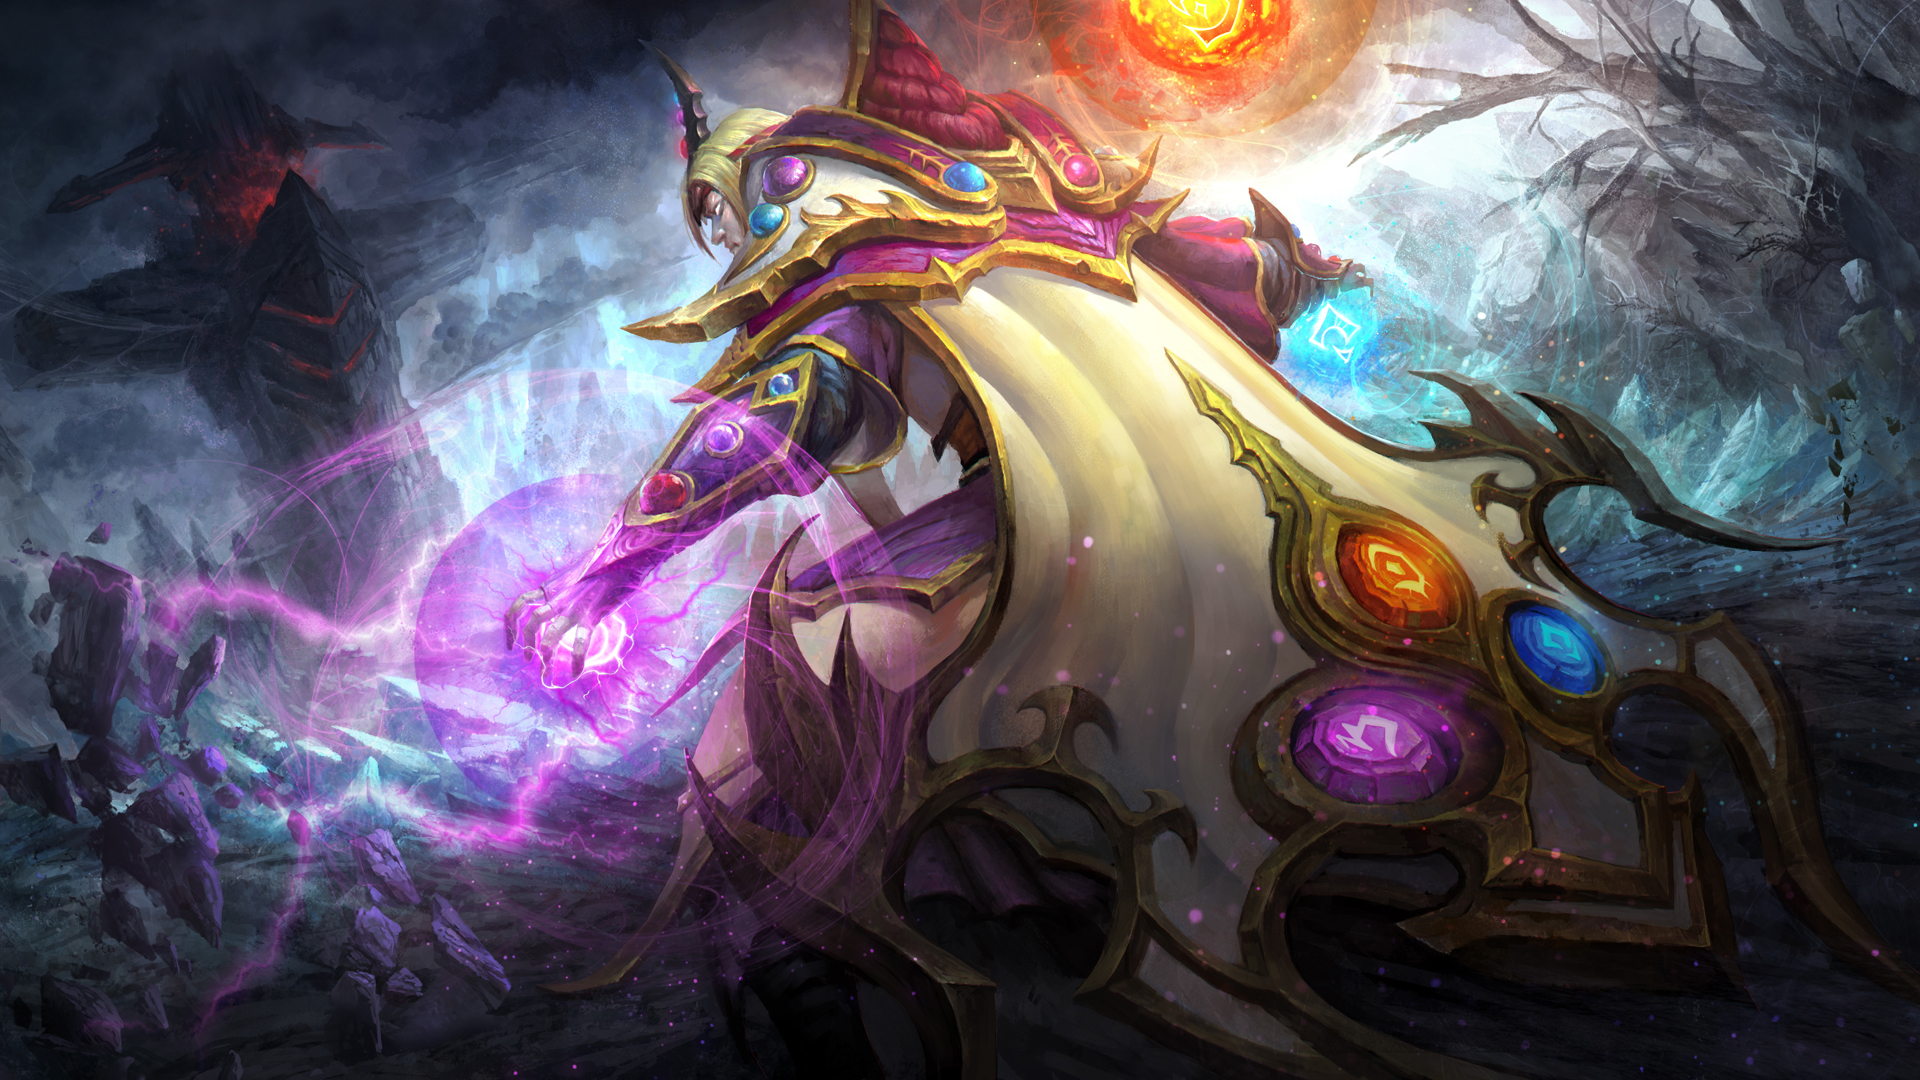 Invoker The Longevity Wizard Wallpaper Dota 2 HD Wallpapers 1920x1080